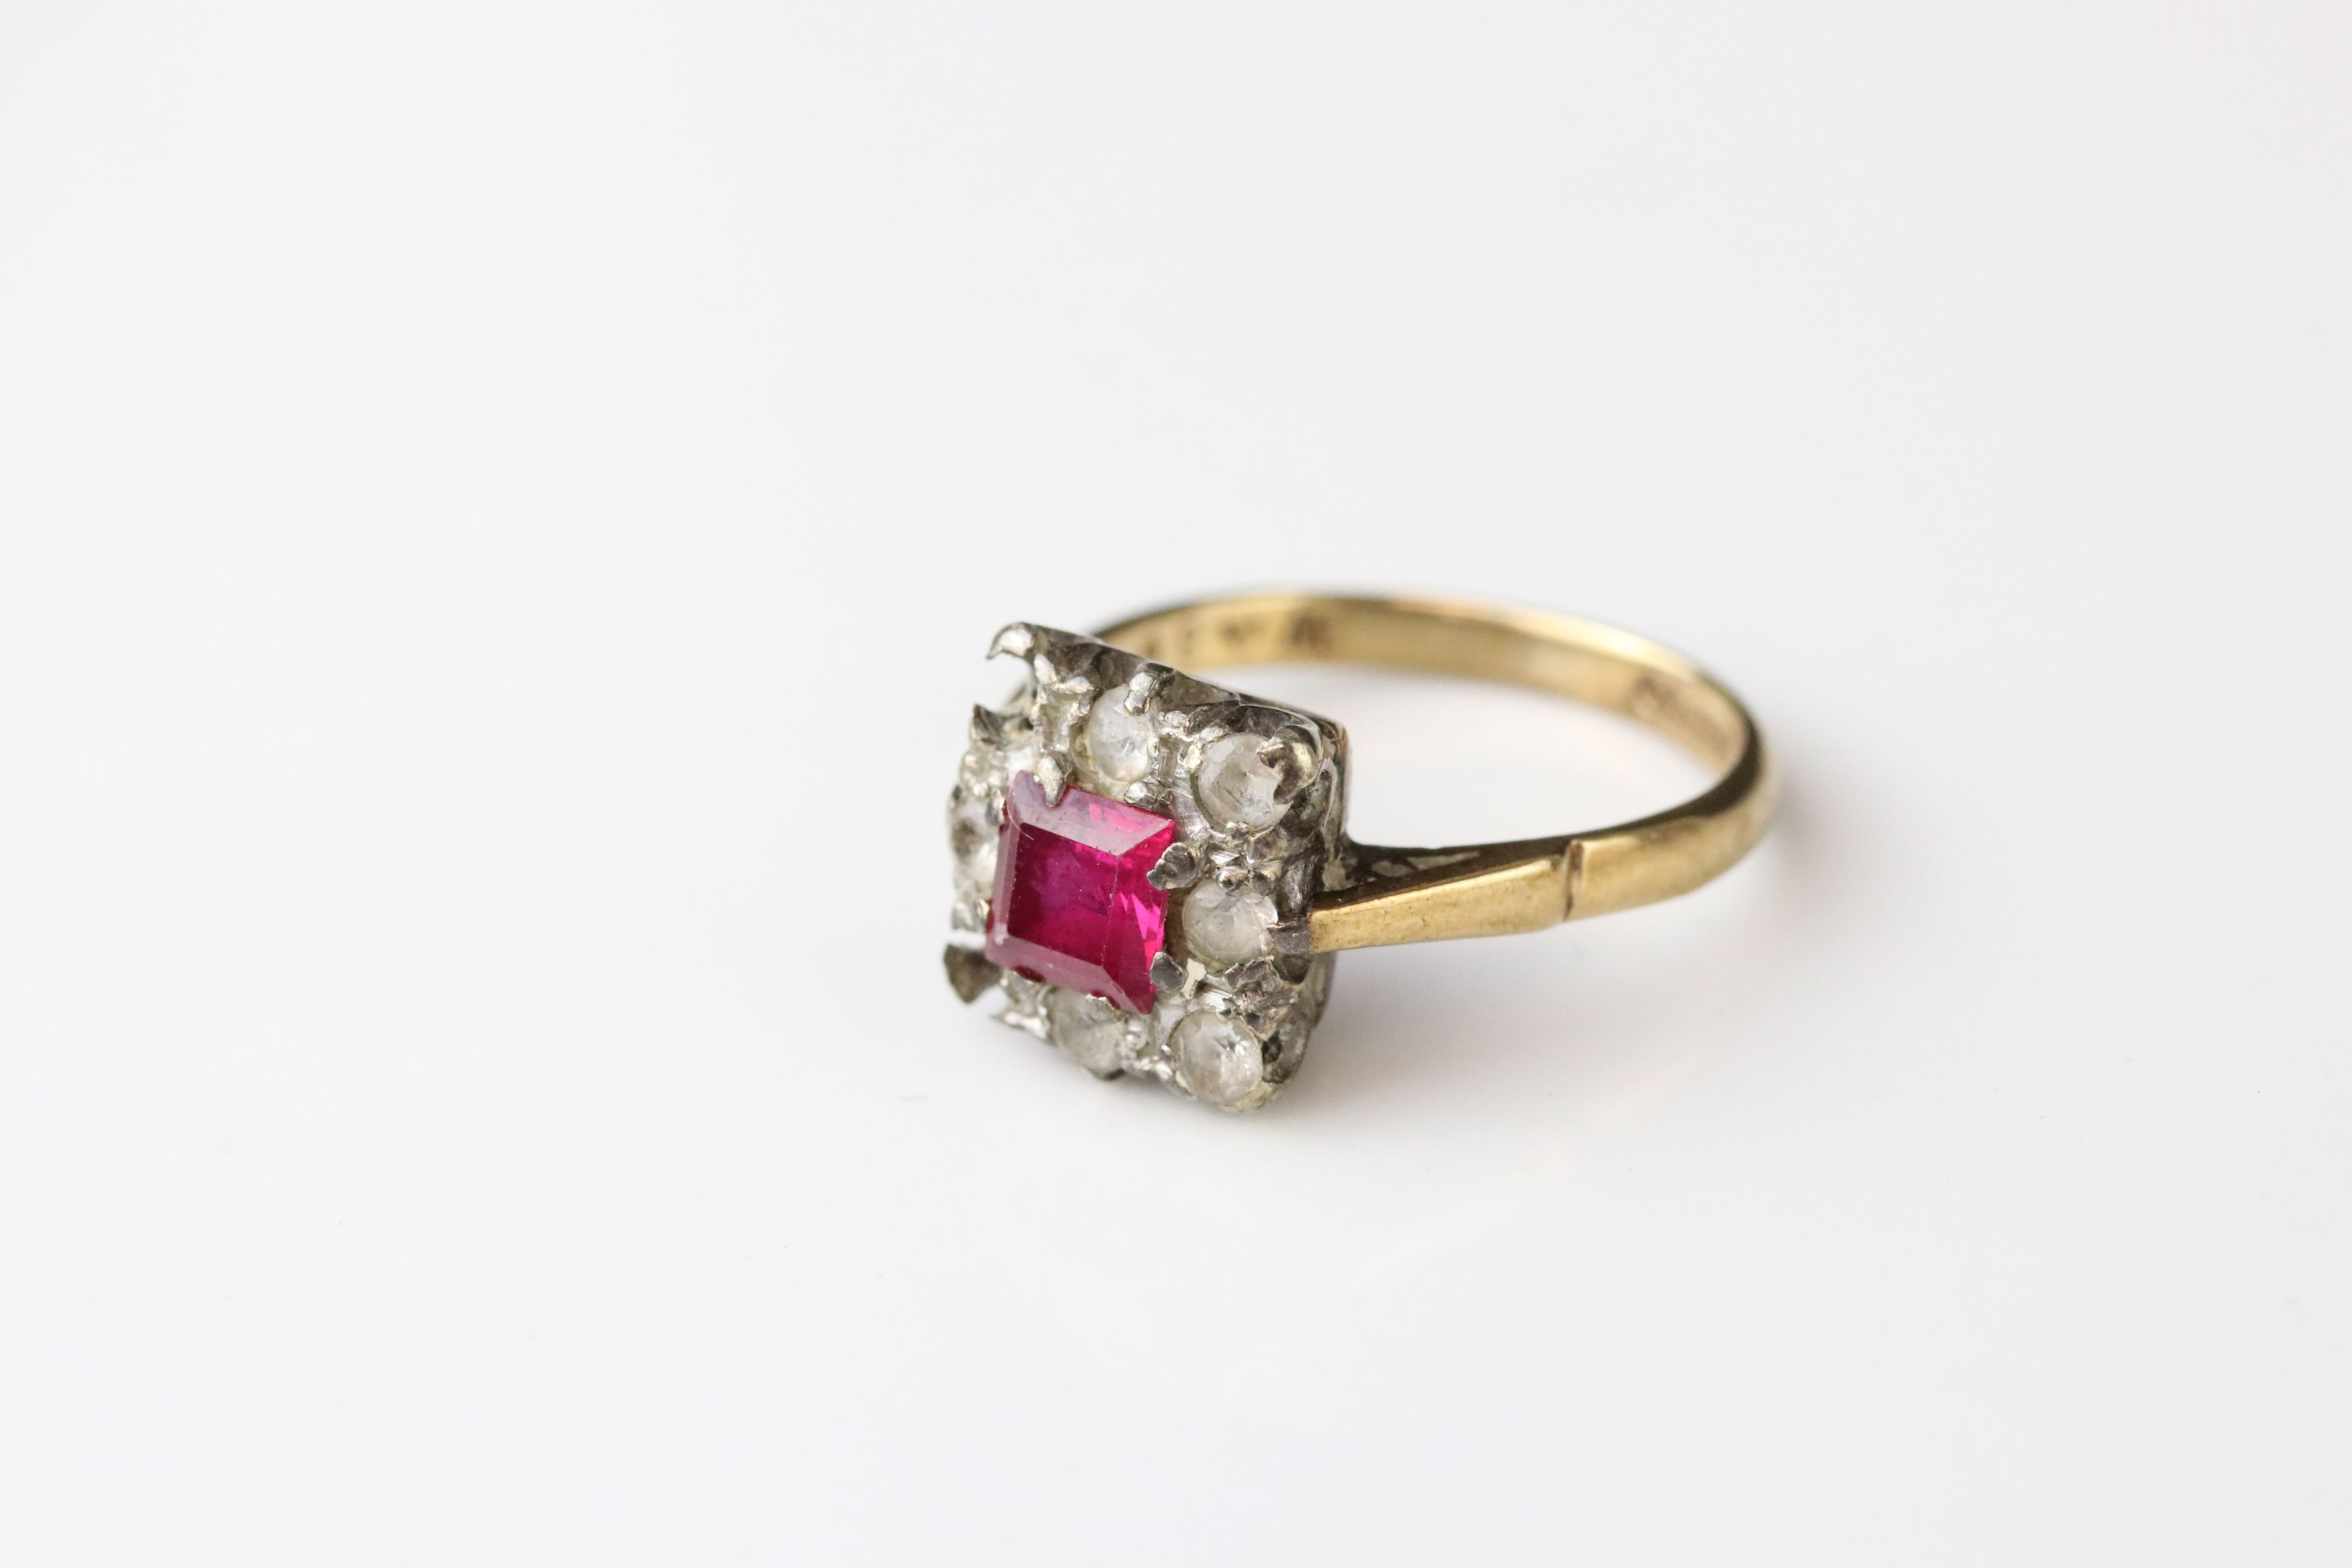 Two 9ct gold dress rings (one af) together with a 9ct gold mount (stone missing) (3) - Image 3 of 5